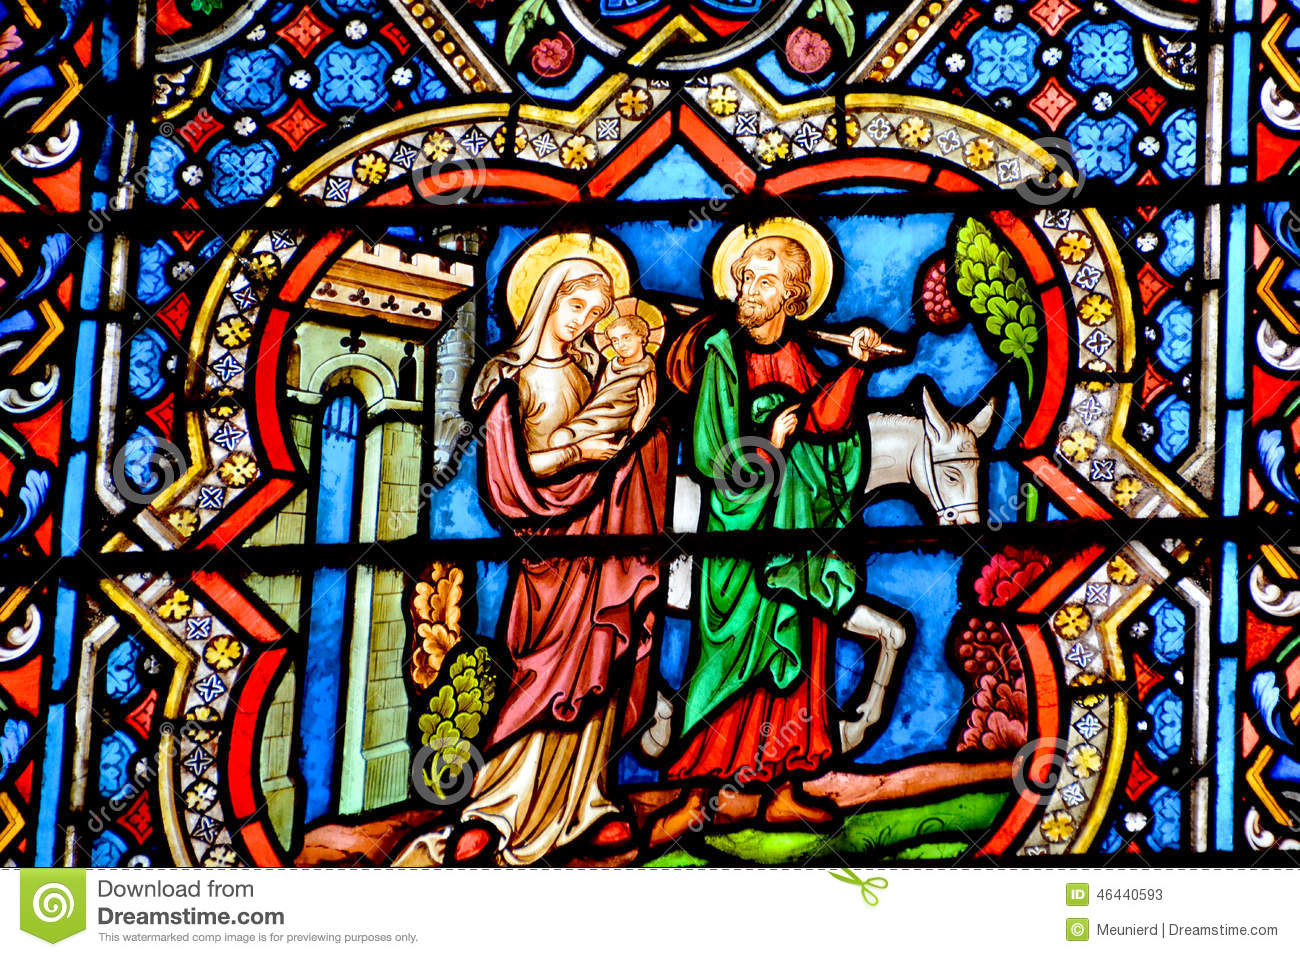 https://thumbs.dreamstime.com/z/stained-glass-window-notre-dame-cathedral-paris-france-october-france-october-one-most-famous-landmarks-46440593.jpg